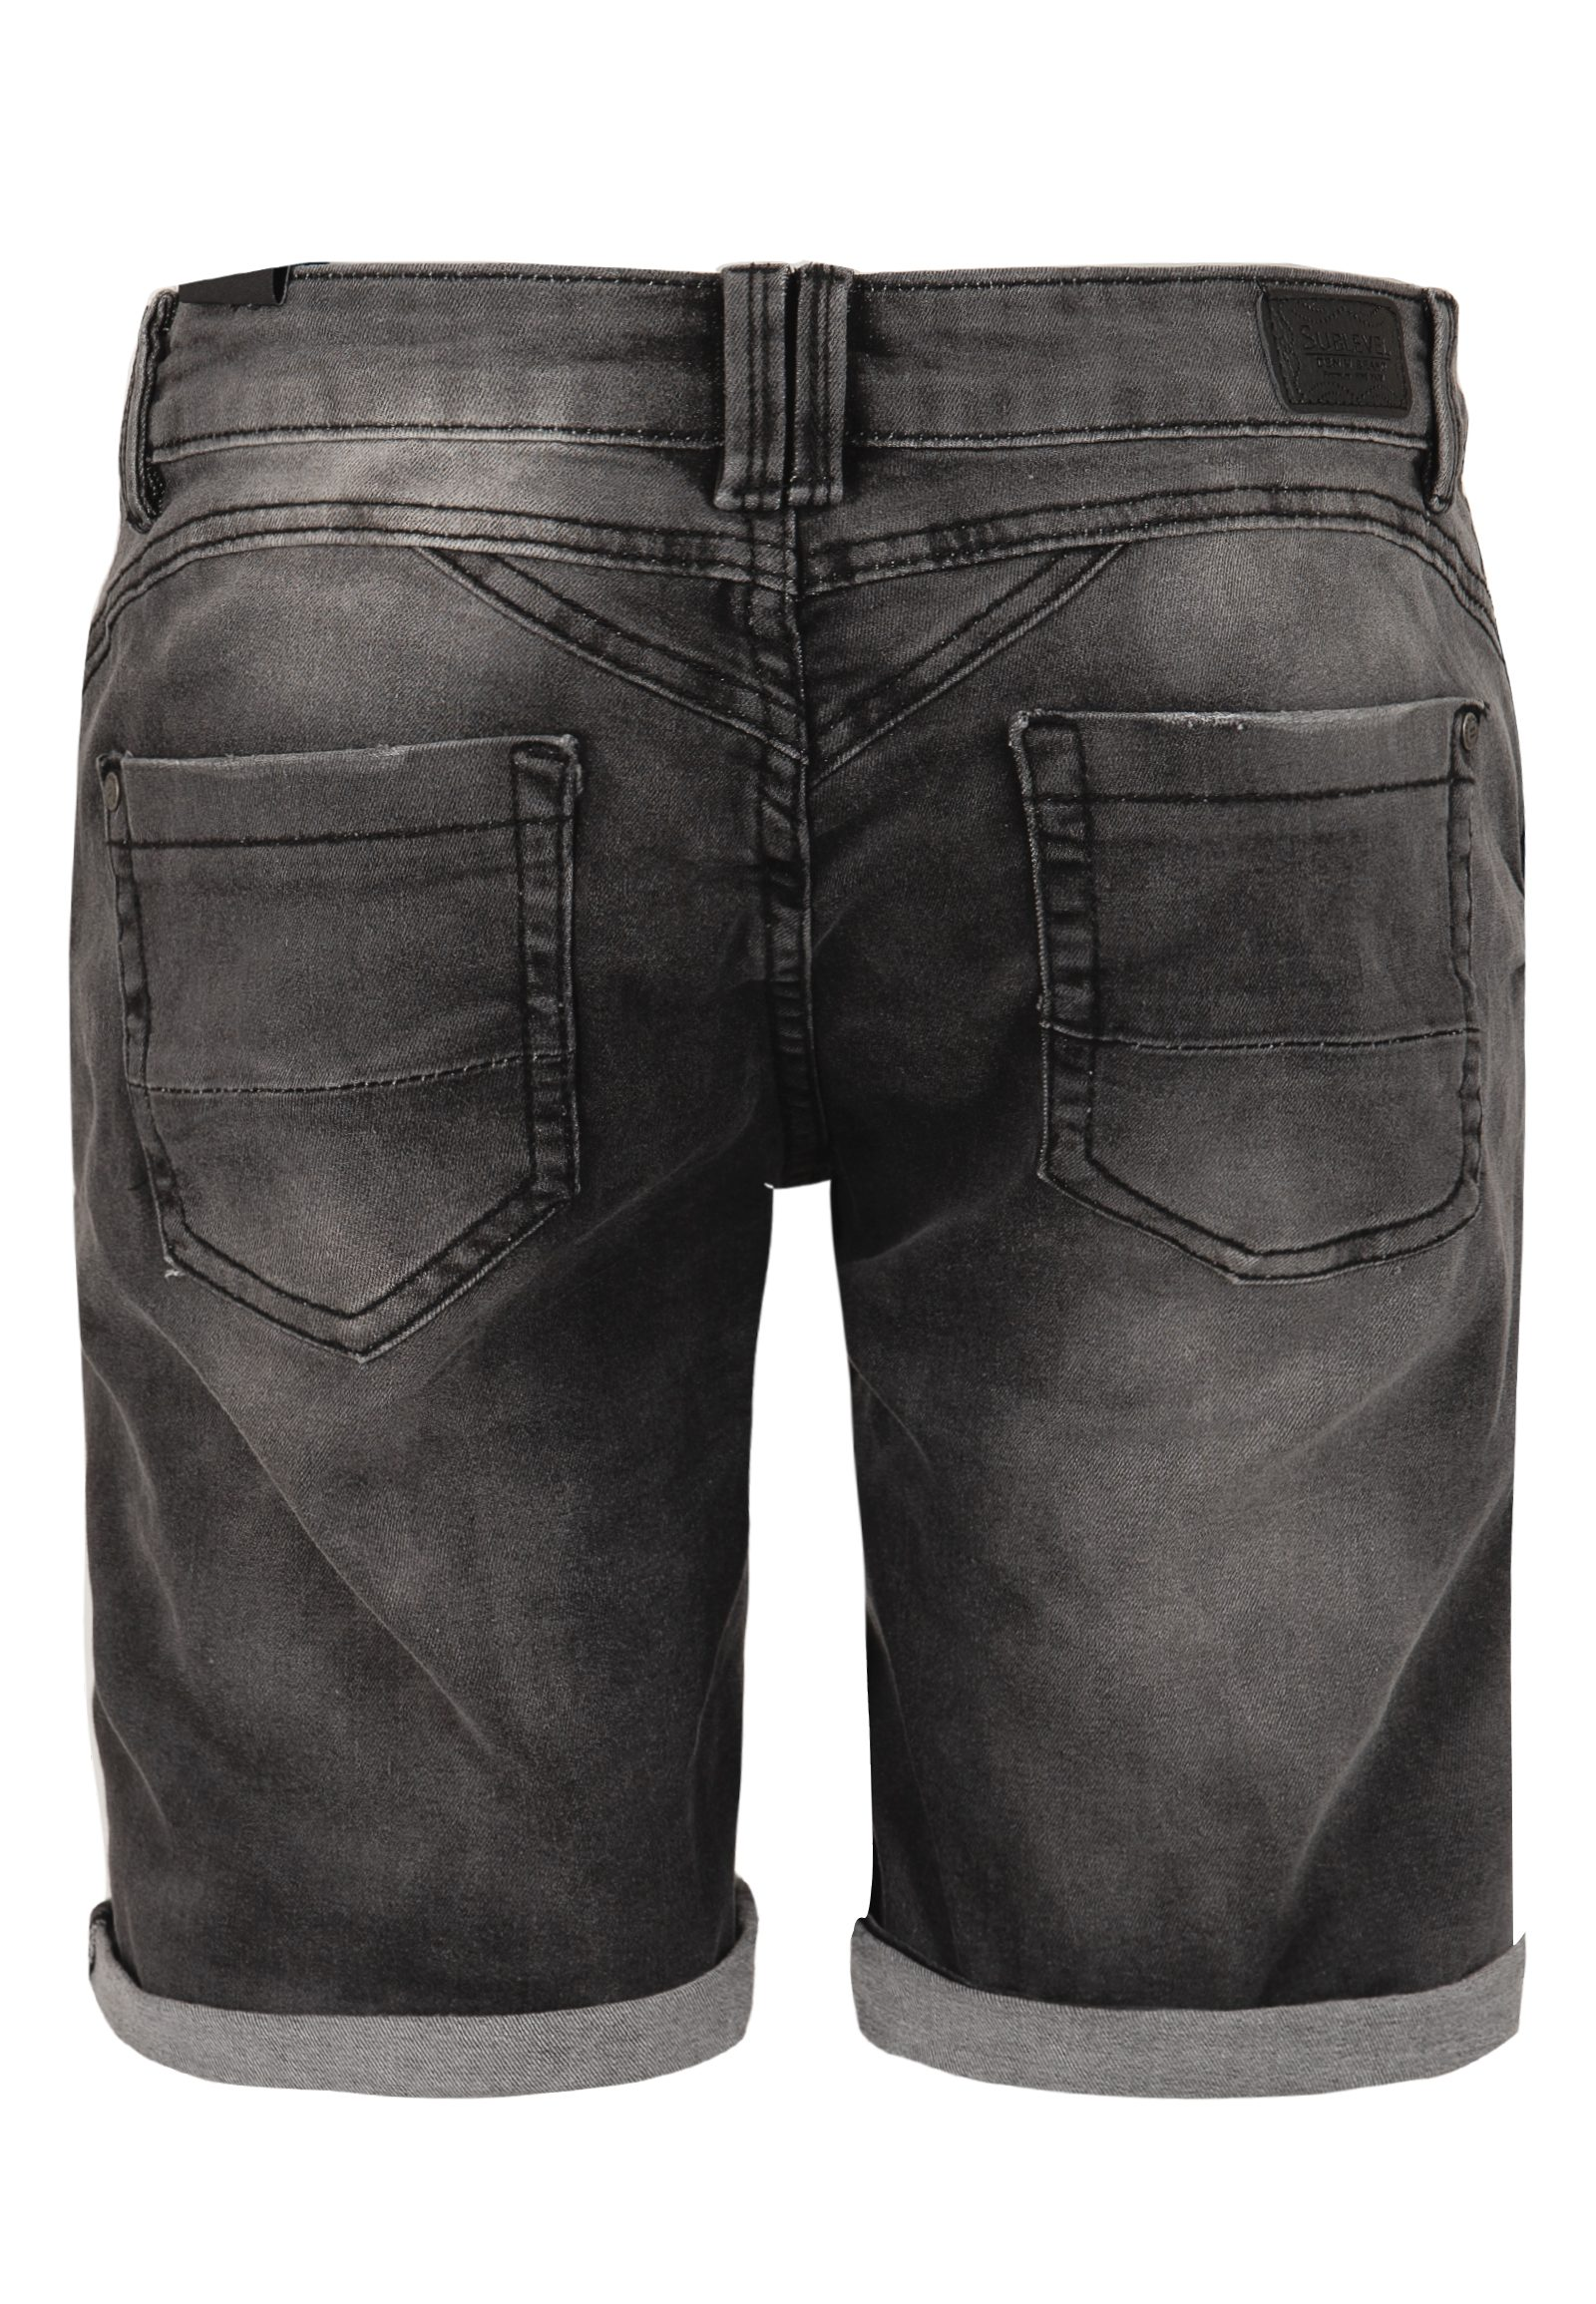 Vorschau: Stretch Denim Shorts